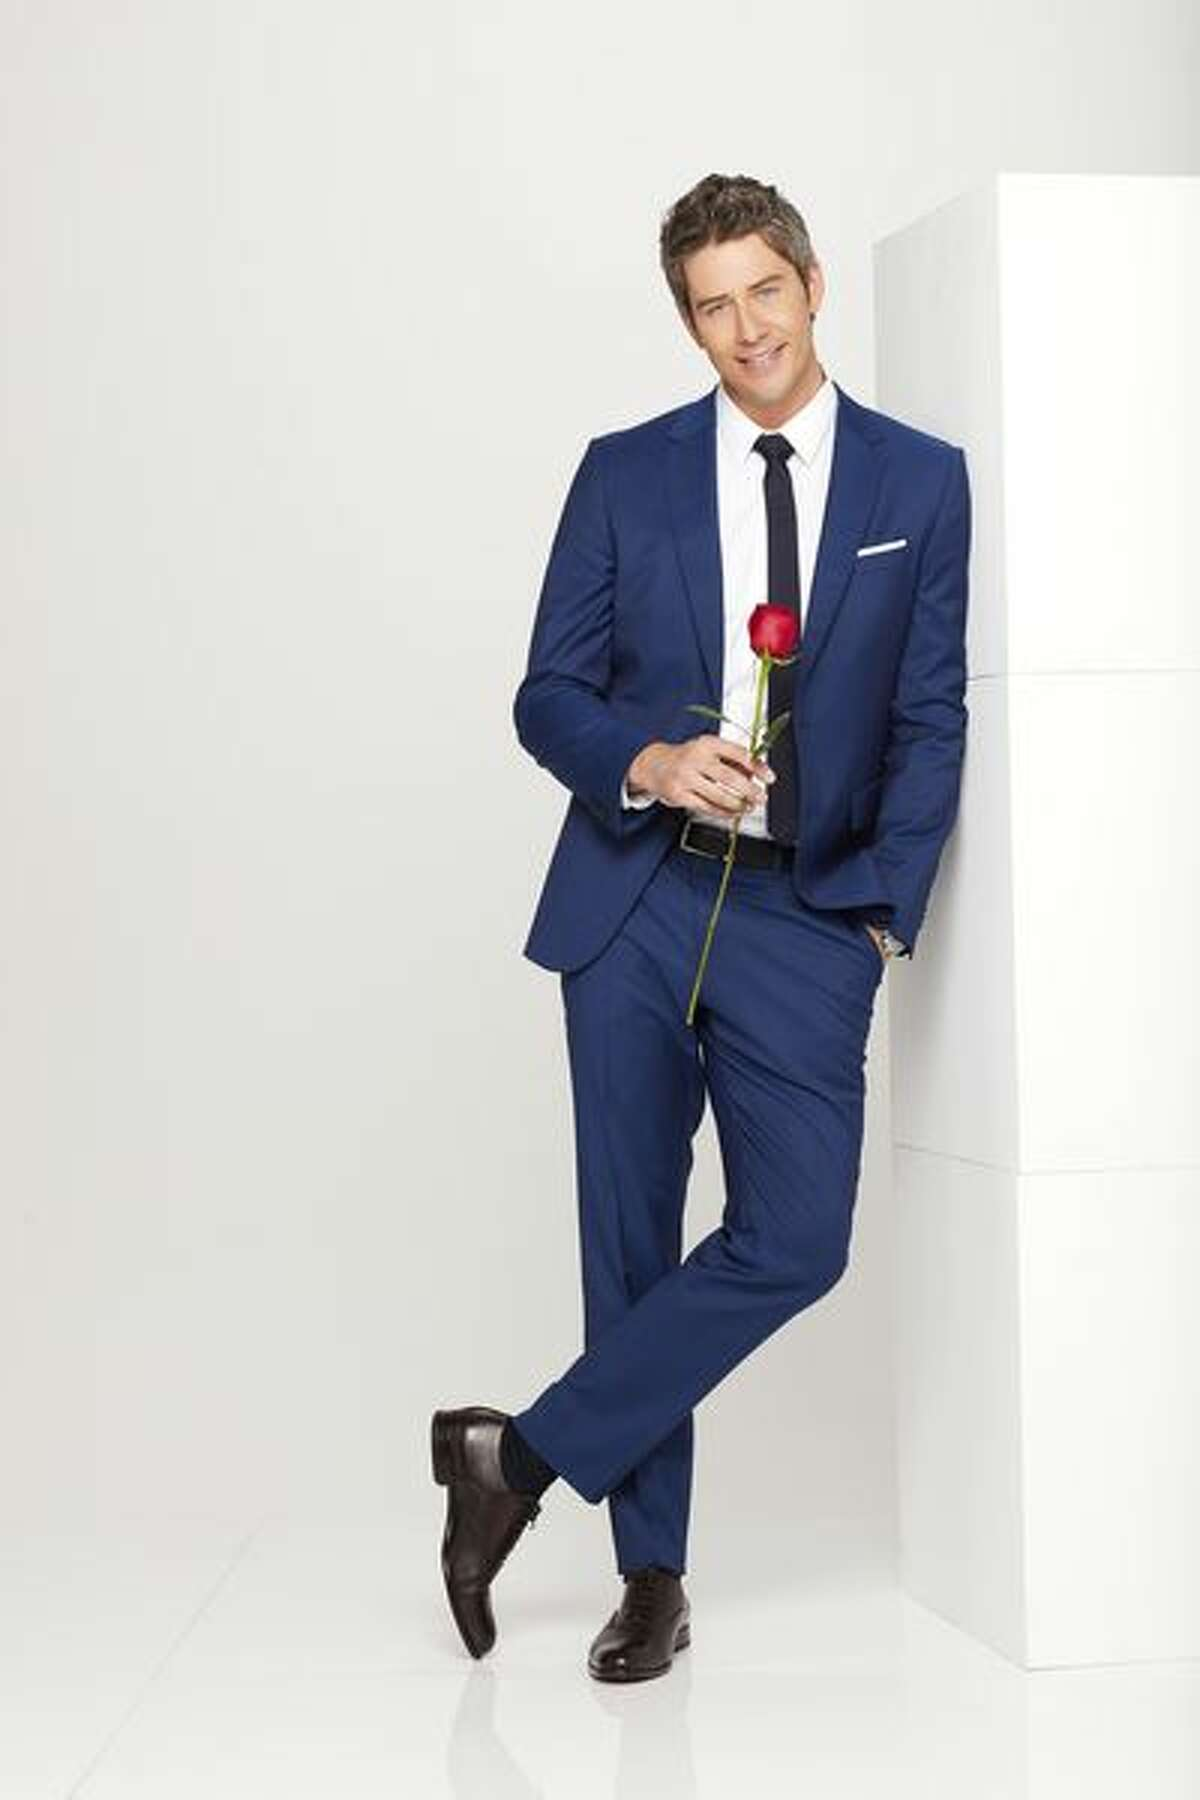 The Bachelor: Monday, January 1 Arie Luyendyk, Jr., race car driver and contestant on Emily Maynard's season of 'The Bachelorette' will look for love this season on 'The Bachelor.' (ABC)